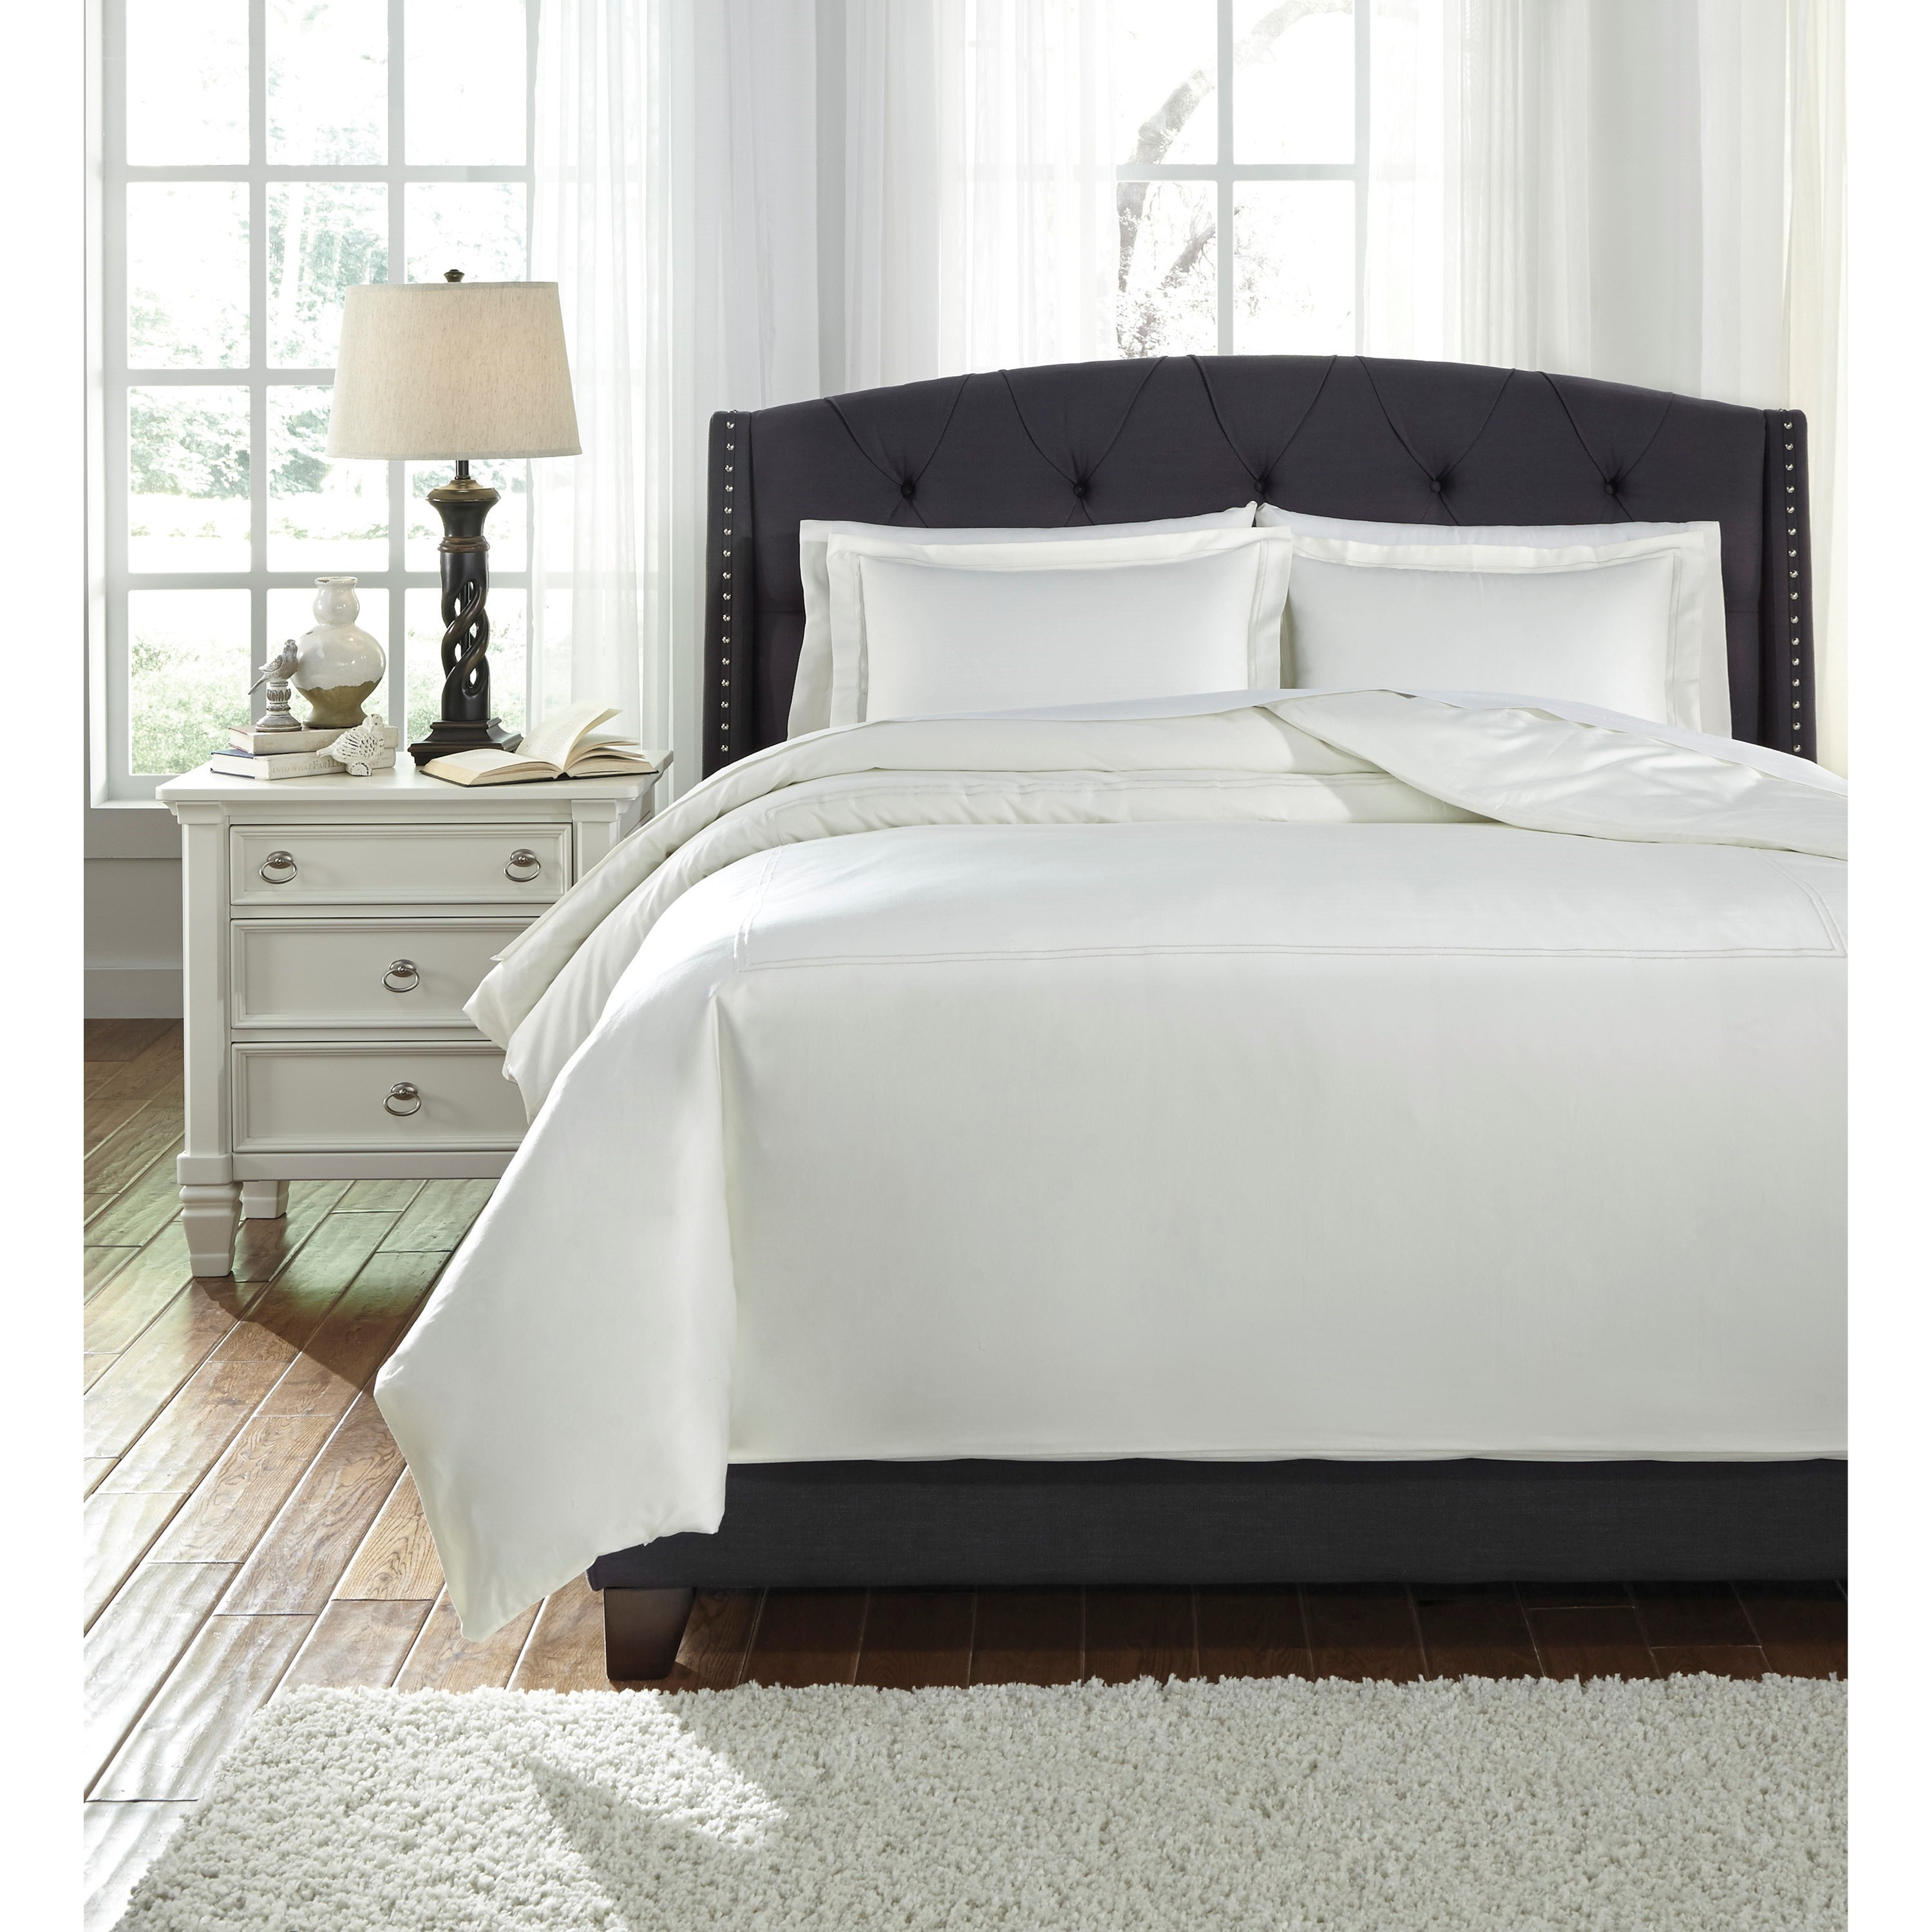 White Duvet Cover Queen Bedding Sets Queen Maurilio White Comforter Set By Trendz At Ruby Gordon Home